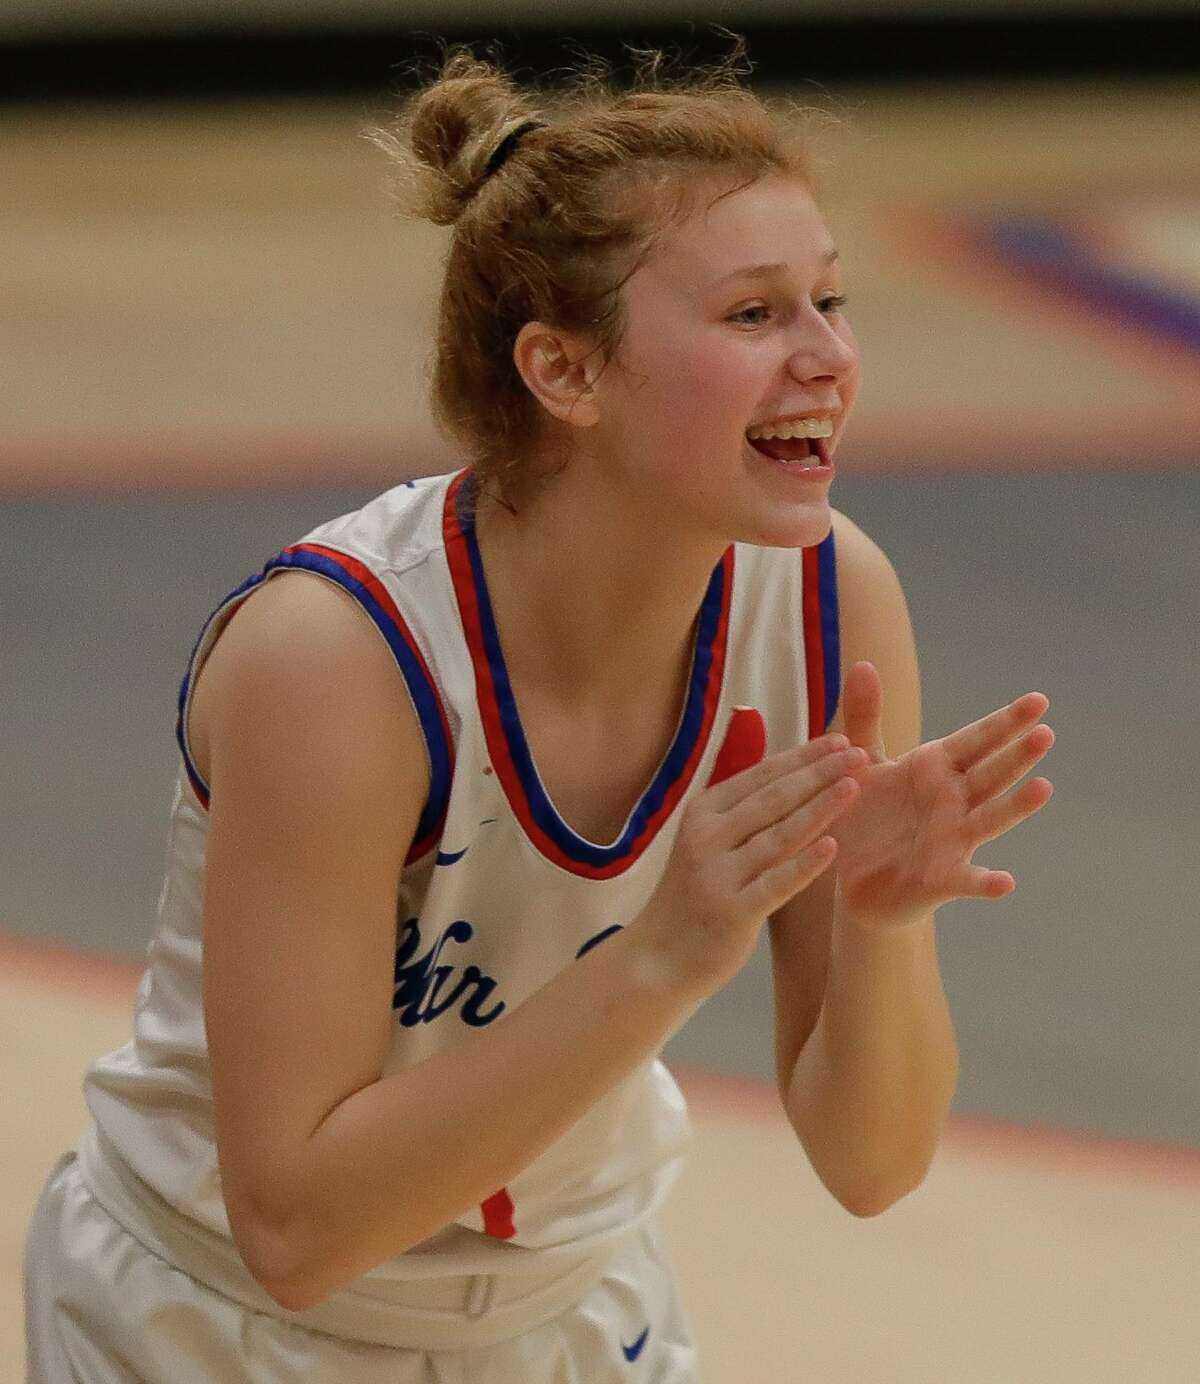 Oak Ridge's Nikki Petrakovitz (1) cheers from the bench during the first quarter of a Region II-6A bi-district high school basketball playoff game at Grand Oaks High School, Thursday, Feb. 11, 2021, in Spring.